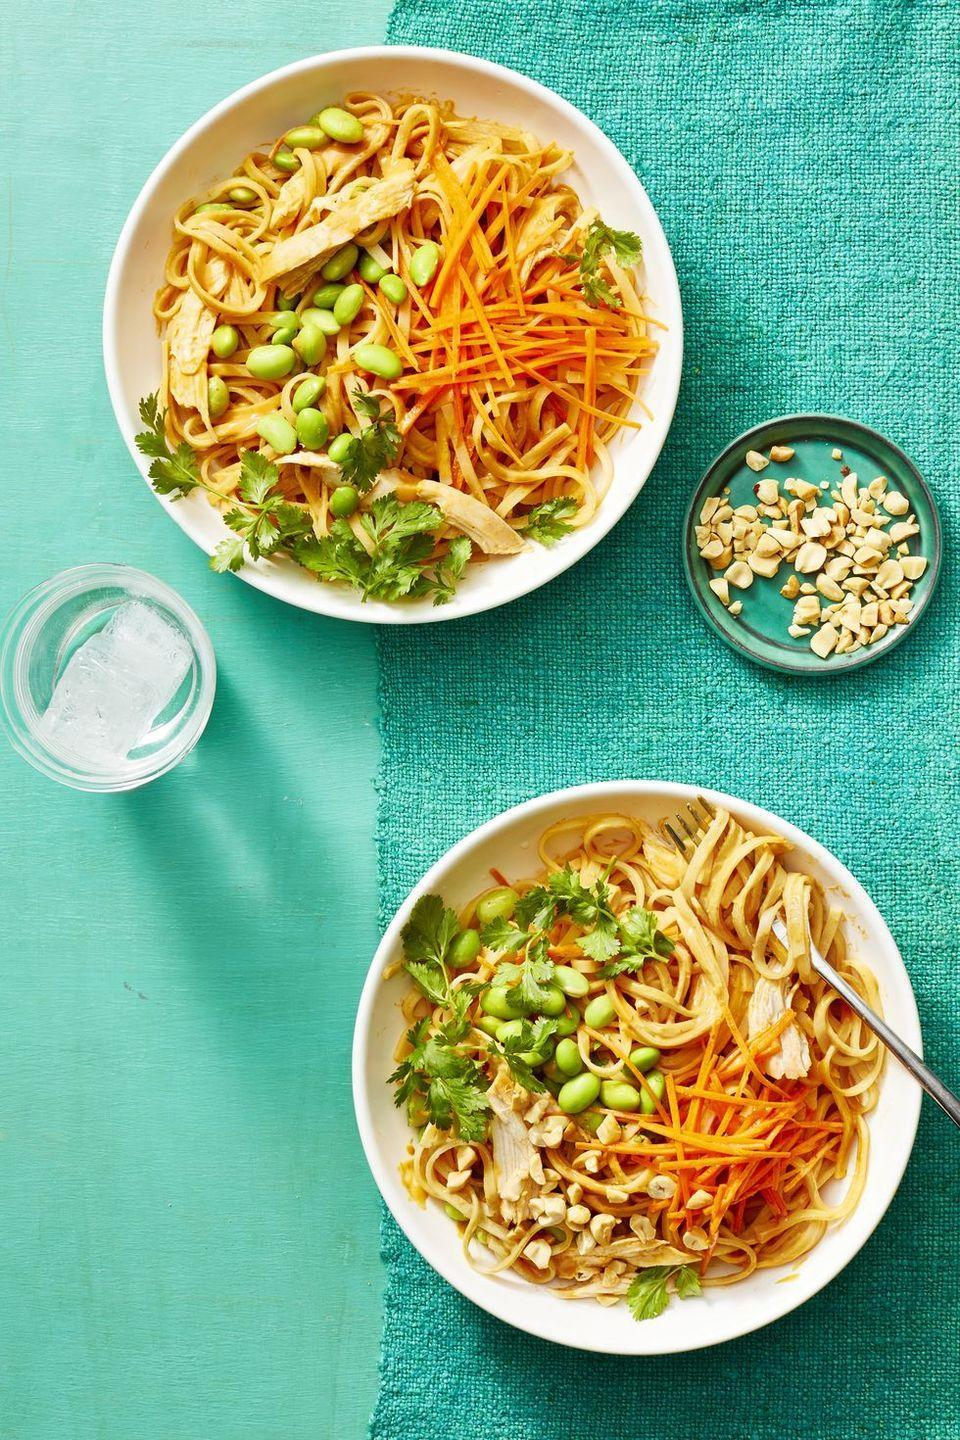 """<p>Customize this Asian-inspired dish by tossing in an assortment of veggies.</p><p><em><a href=""""https://www.womansday.com/food-recipes/food-drinks/a22551802/peanut-noodles-with-chicken-recipe/"""" rel=""""nofollow noopener"""" target=""""_blank"""" data-ylk=""""slk:Get the recipe from Woman's Day »"""" class=""""link rapid-noclick-resp"""">Get the recipe from Woman's Day »</a></em></p><p><strong>RELATED:</strong> <a href=""""https://www.goodhousekeeping.com/food-recipes/easy/g2341/pasta-recipes-with-5-ingredients/"""" rel=""""nofollow noopener"""" target=""""_blank"""" data-ylk=""""slk:50+ Easy Pasta Recipes for the Perfect Weeknight Dinner"""" class=""""link rapid-noclick-resp"""">50+ Easy Pasta Recipes for the Perfect Weeknight Dinner</a><br></p>"""